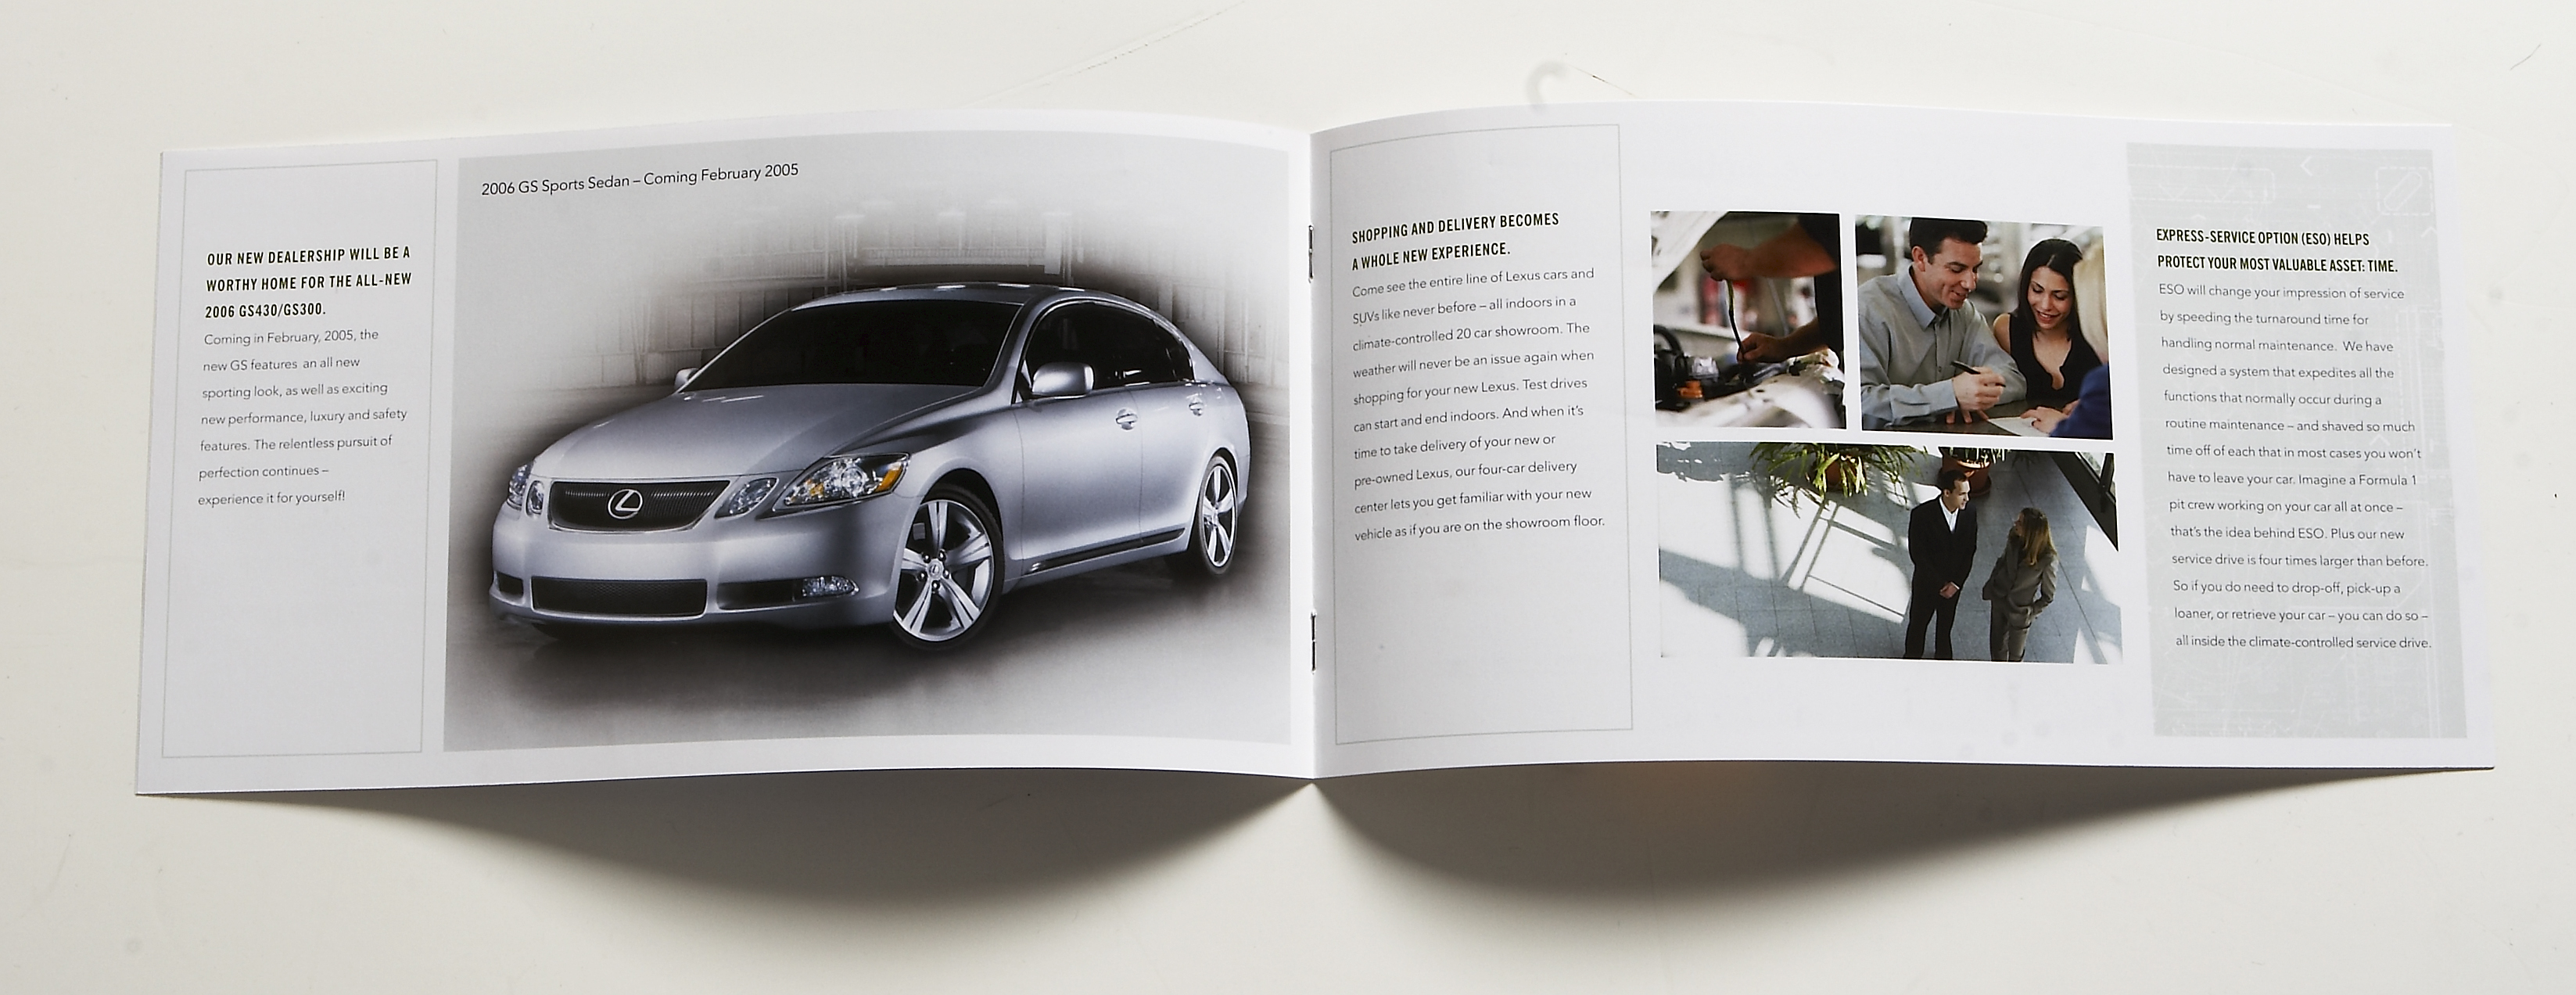 Lexus Inside Spread, Lap of Luxury